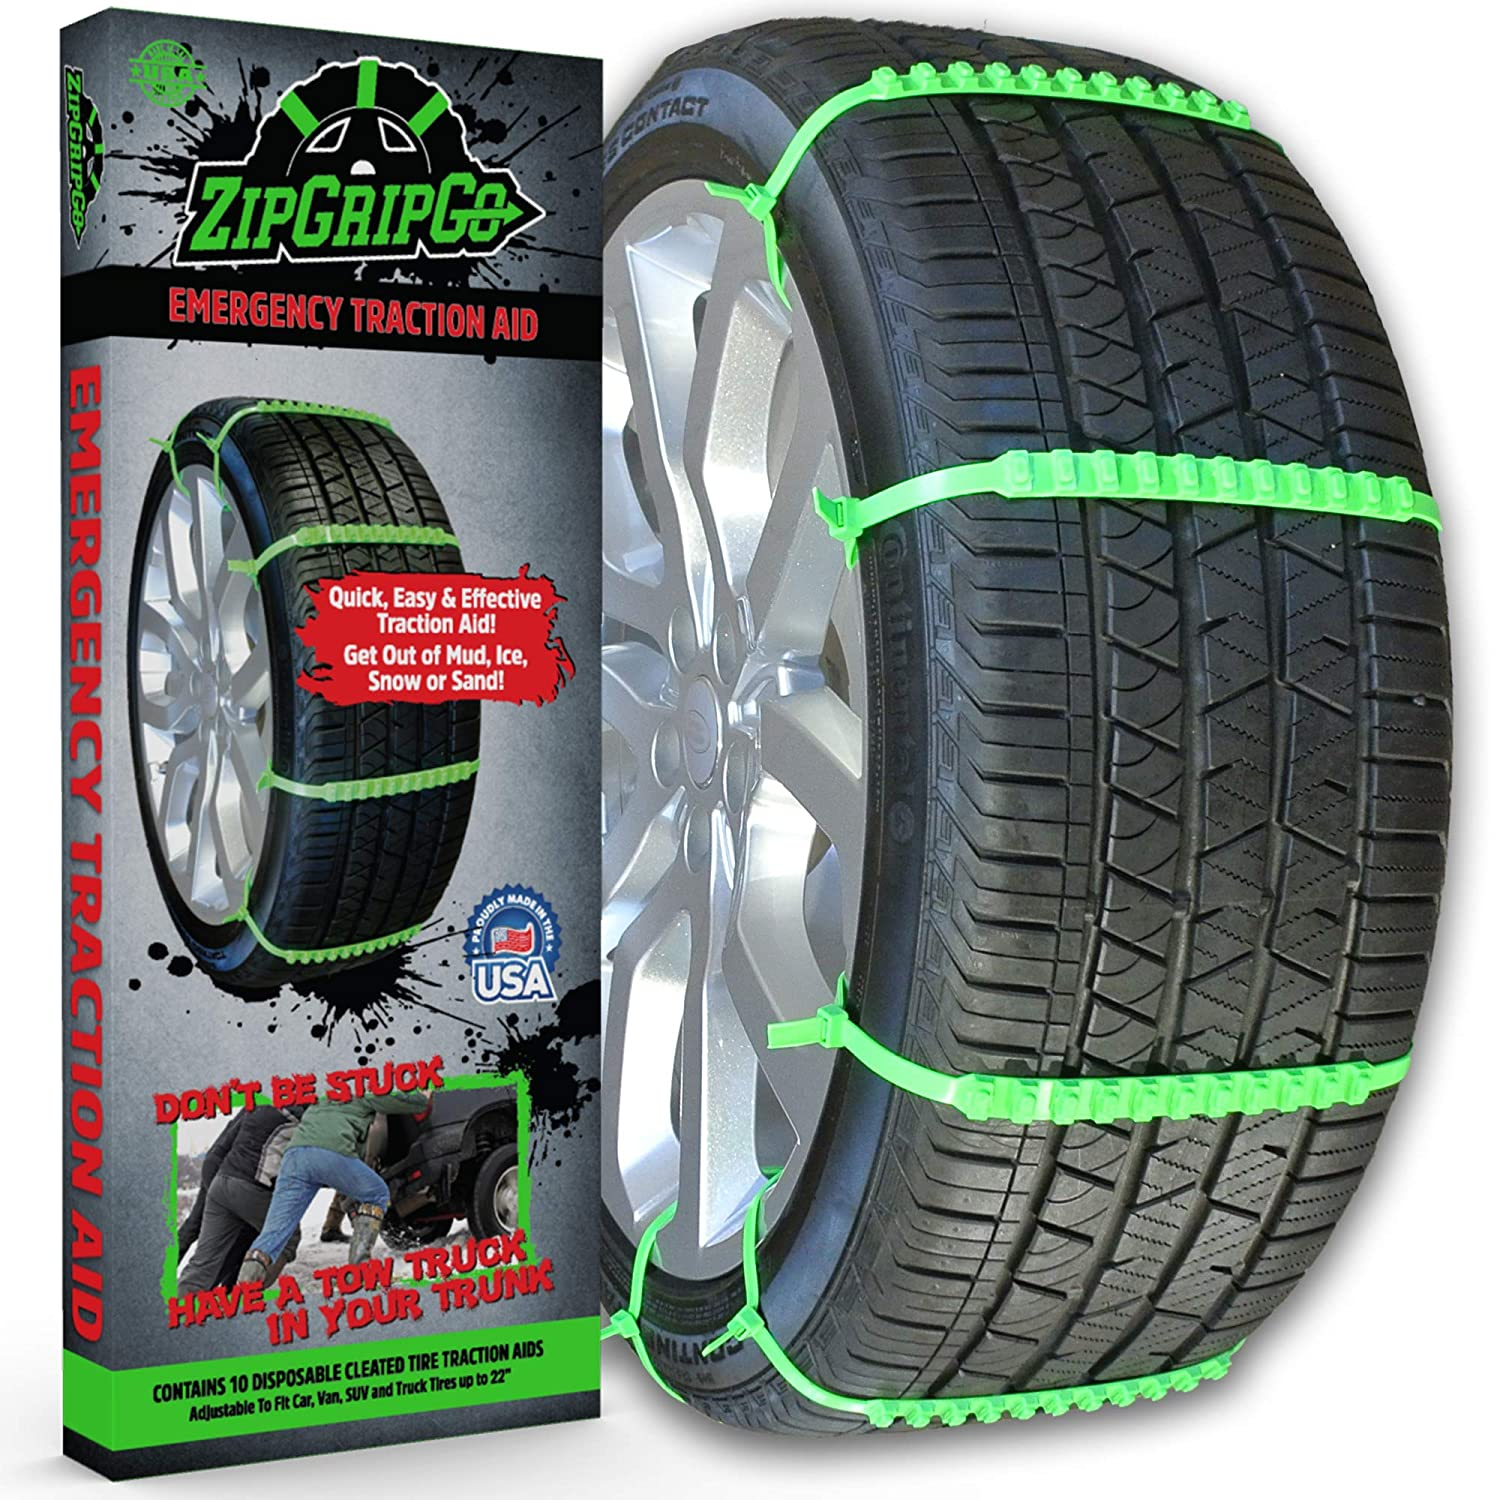 36fd5372f155 ZipGripGo Emergency Zip Tie Car Tire Traction Chains - Disposable Plastic  Studded Cables for Snow, Ice, Sand or Mud.: Automotive